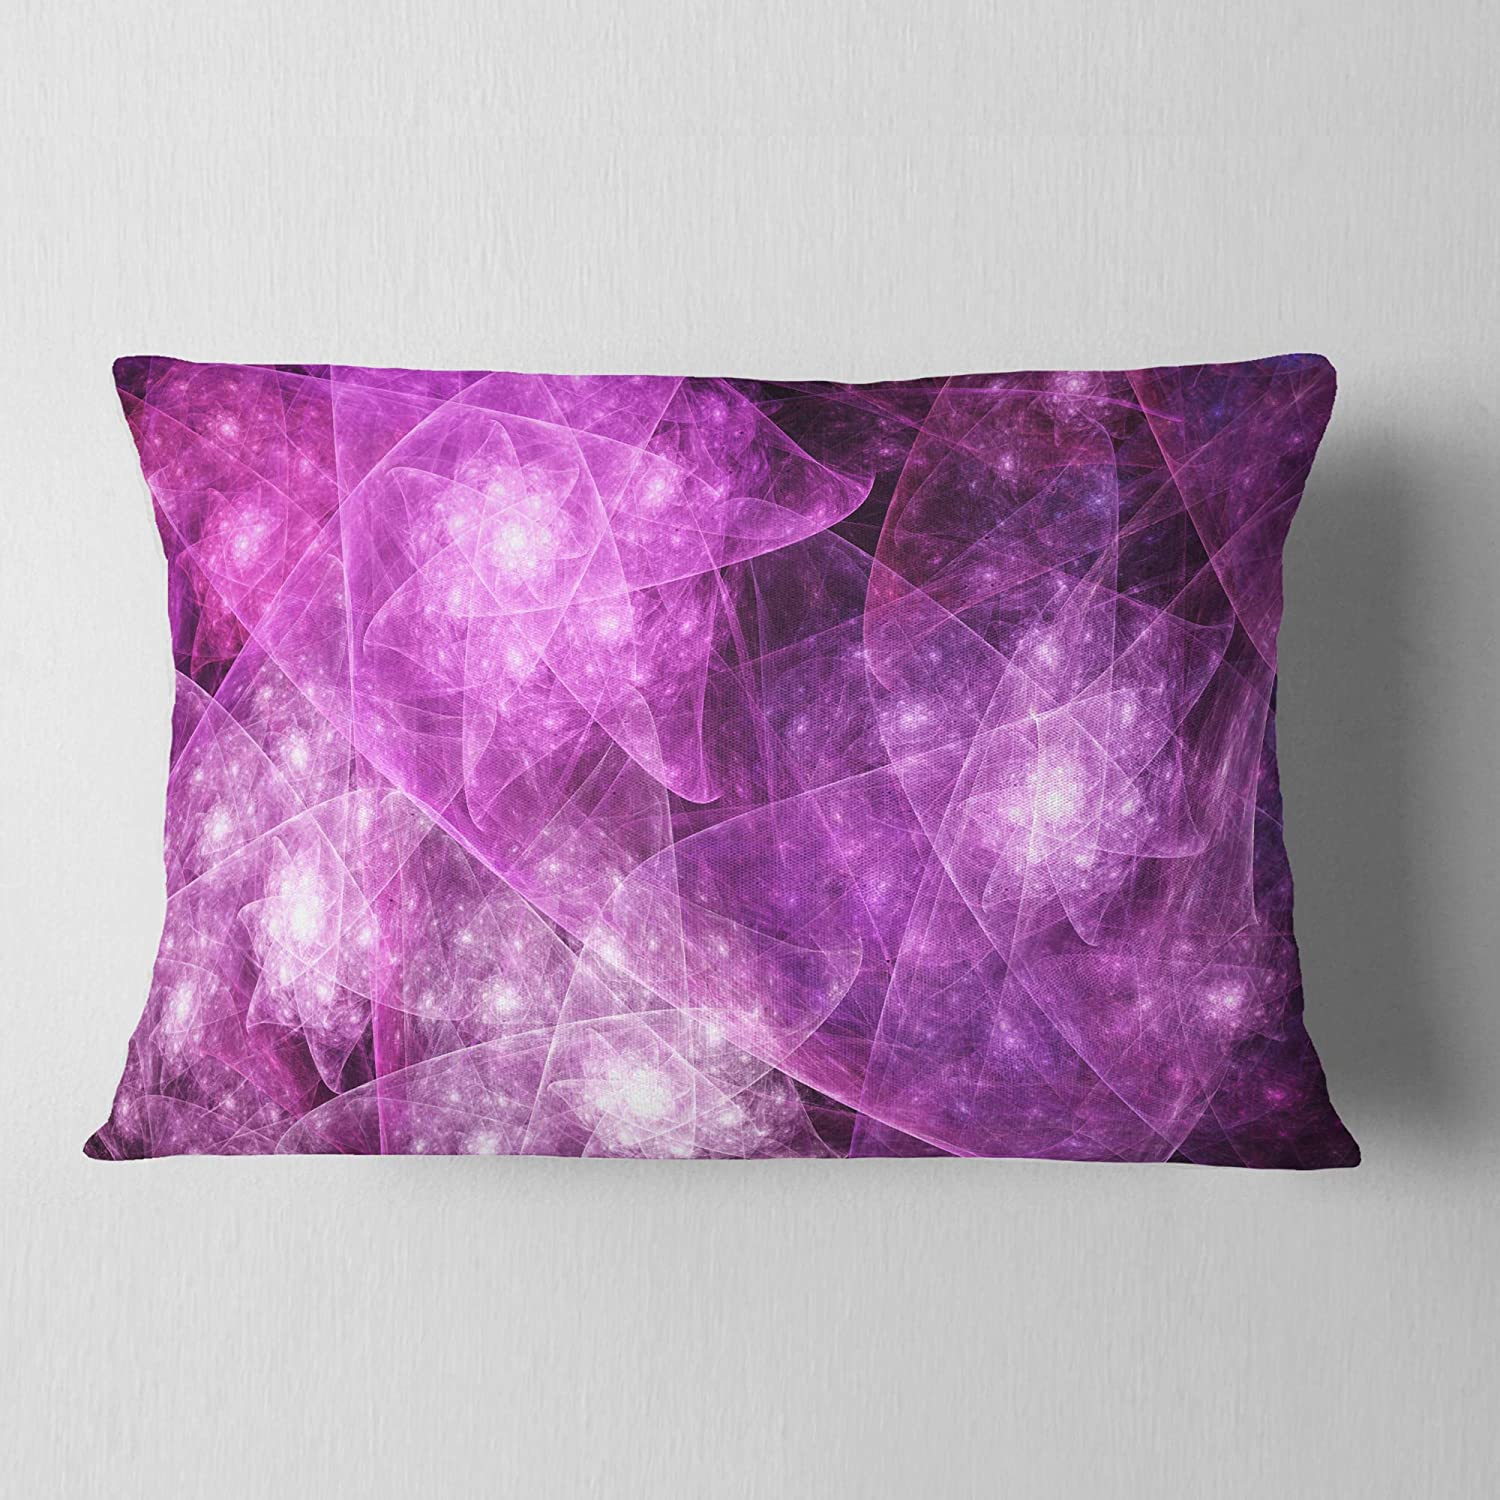 12 x 20 Insert Printed Sofa Throw Pillow Designart CU16341-12-20 Pink Rotating Polyhedron Abstract Lumbar Cushion Cover for Living Room